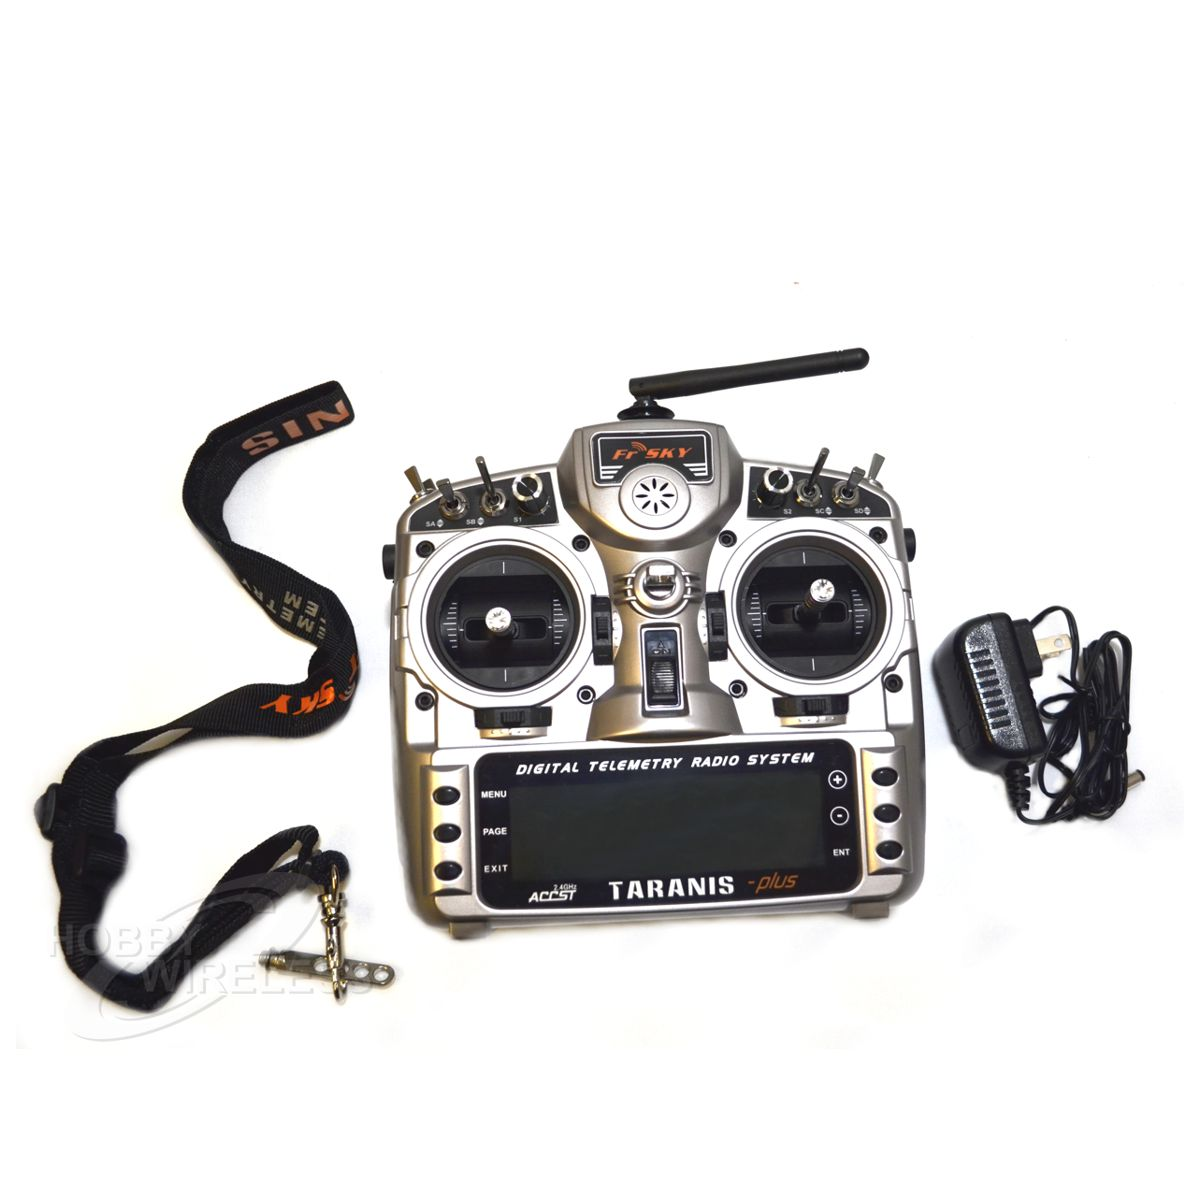 FRSky Taranis X9D Plus 2.4 GHz ACCST Radio & X8R Receiver (Mode 2) - Click Image to Close